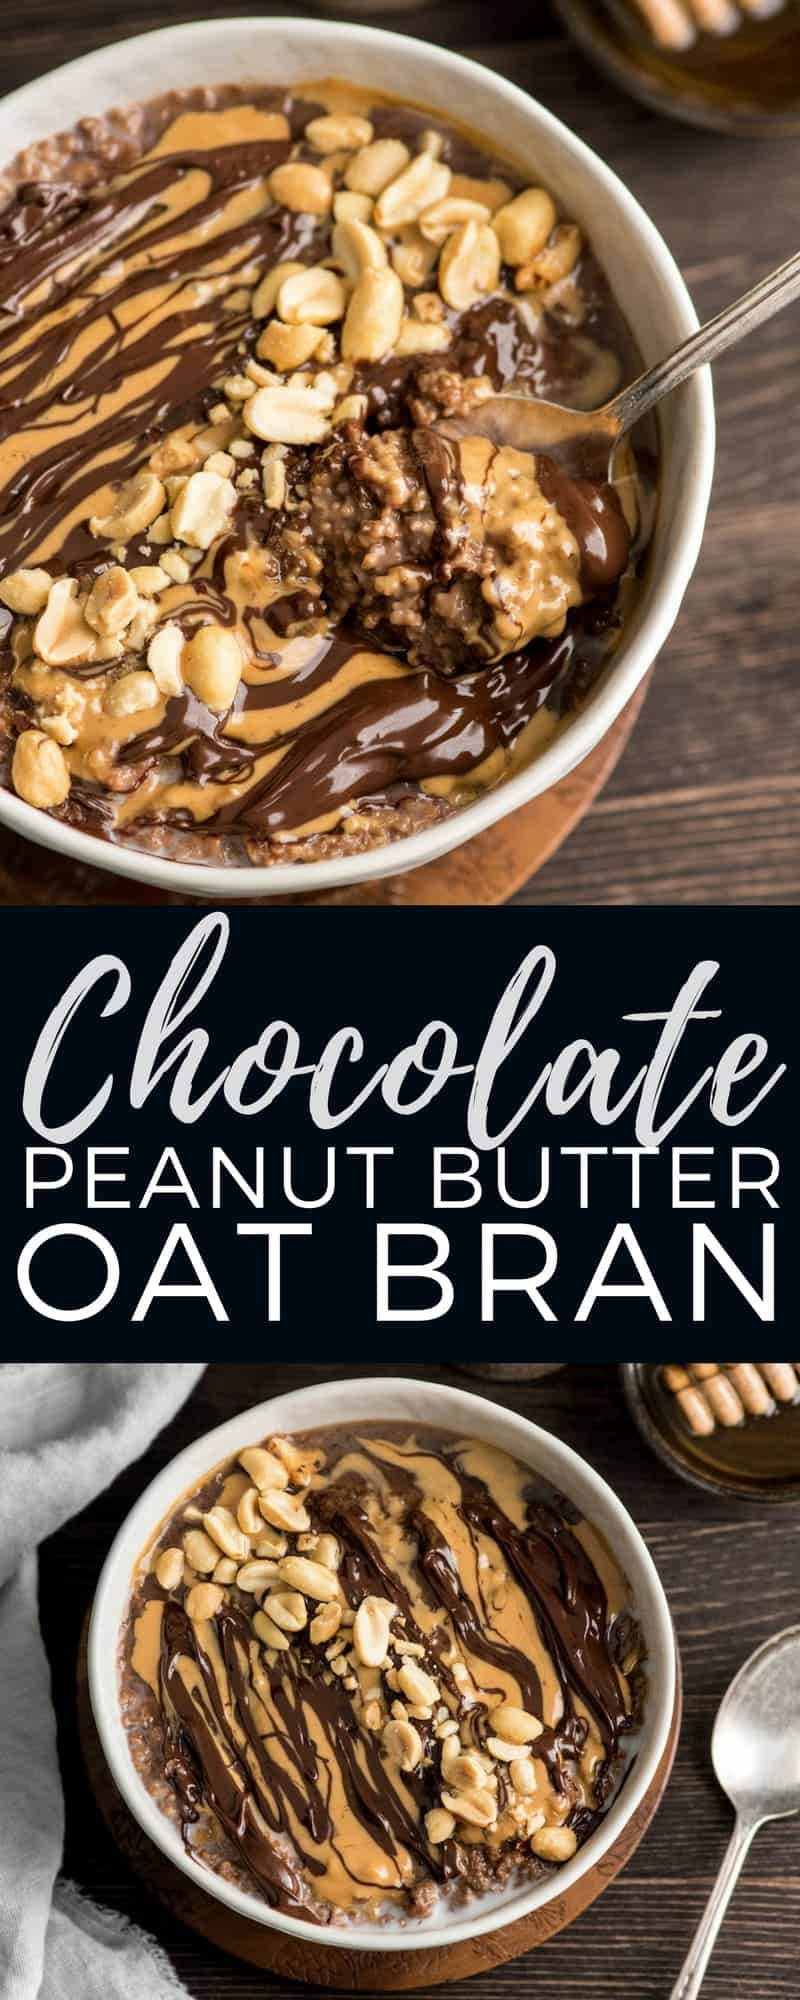 This Chocolate Peanut Butter Oat Bran is a super healthy breakfast recipe that tastes like a peanut butter cup and is ready in minutes! #glutenfree #dairyfree #vegan #peanutbutter #chocolate #oatbran #breakfastrecipe #breakfast